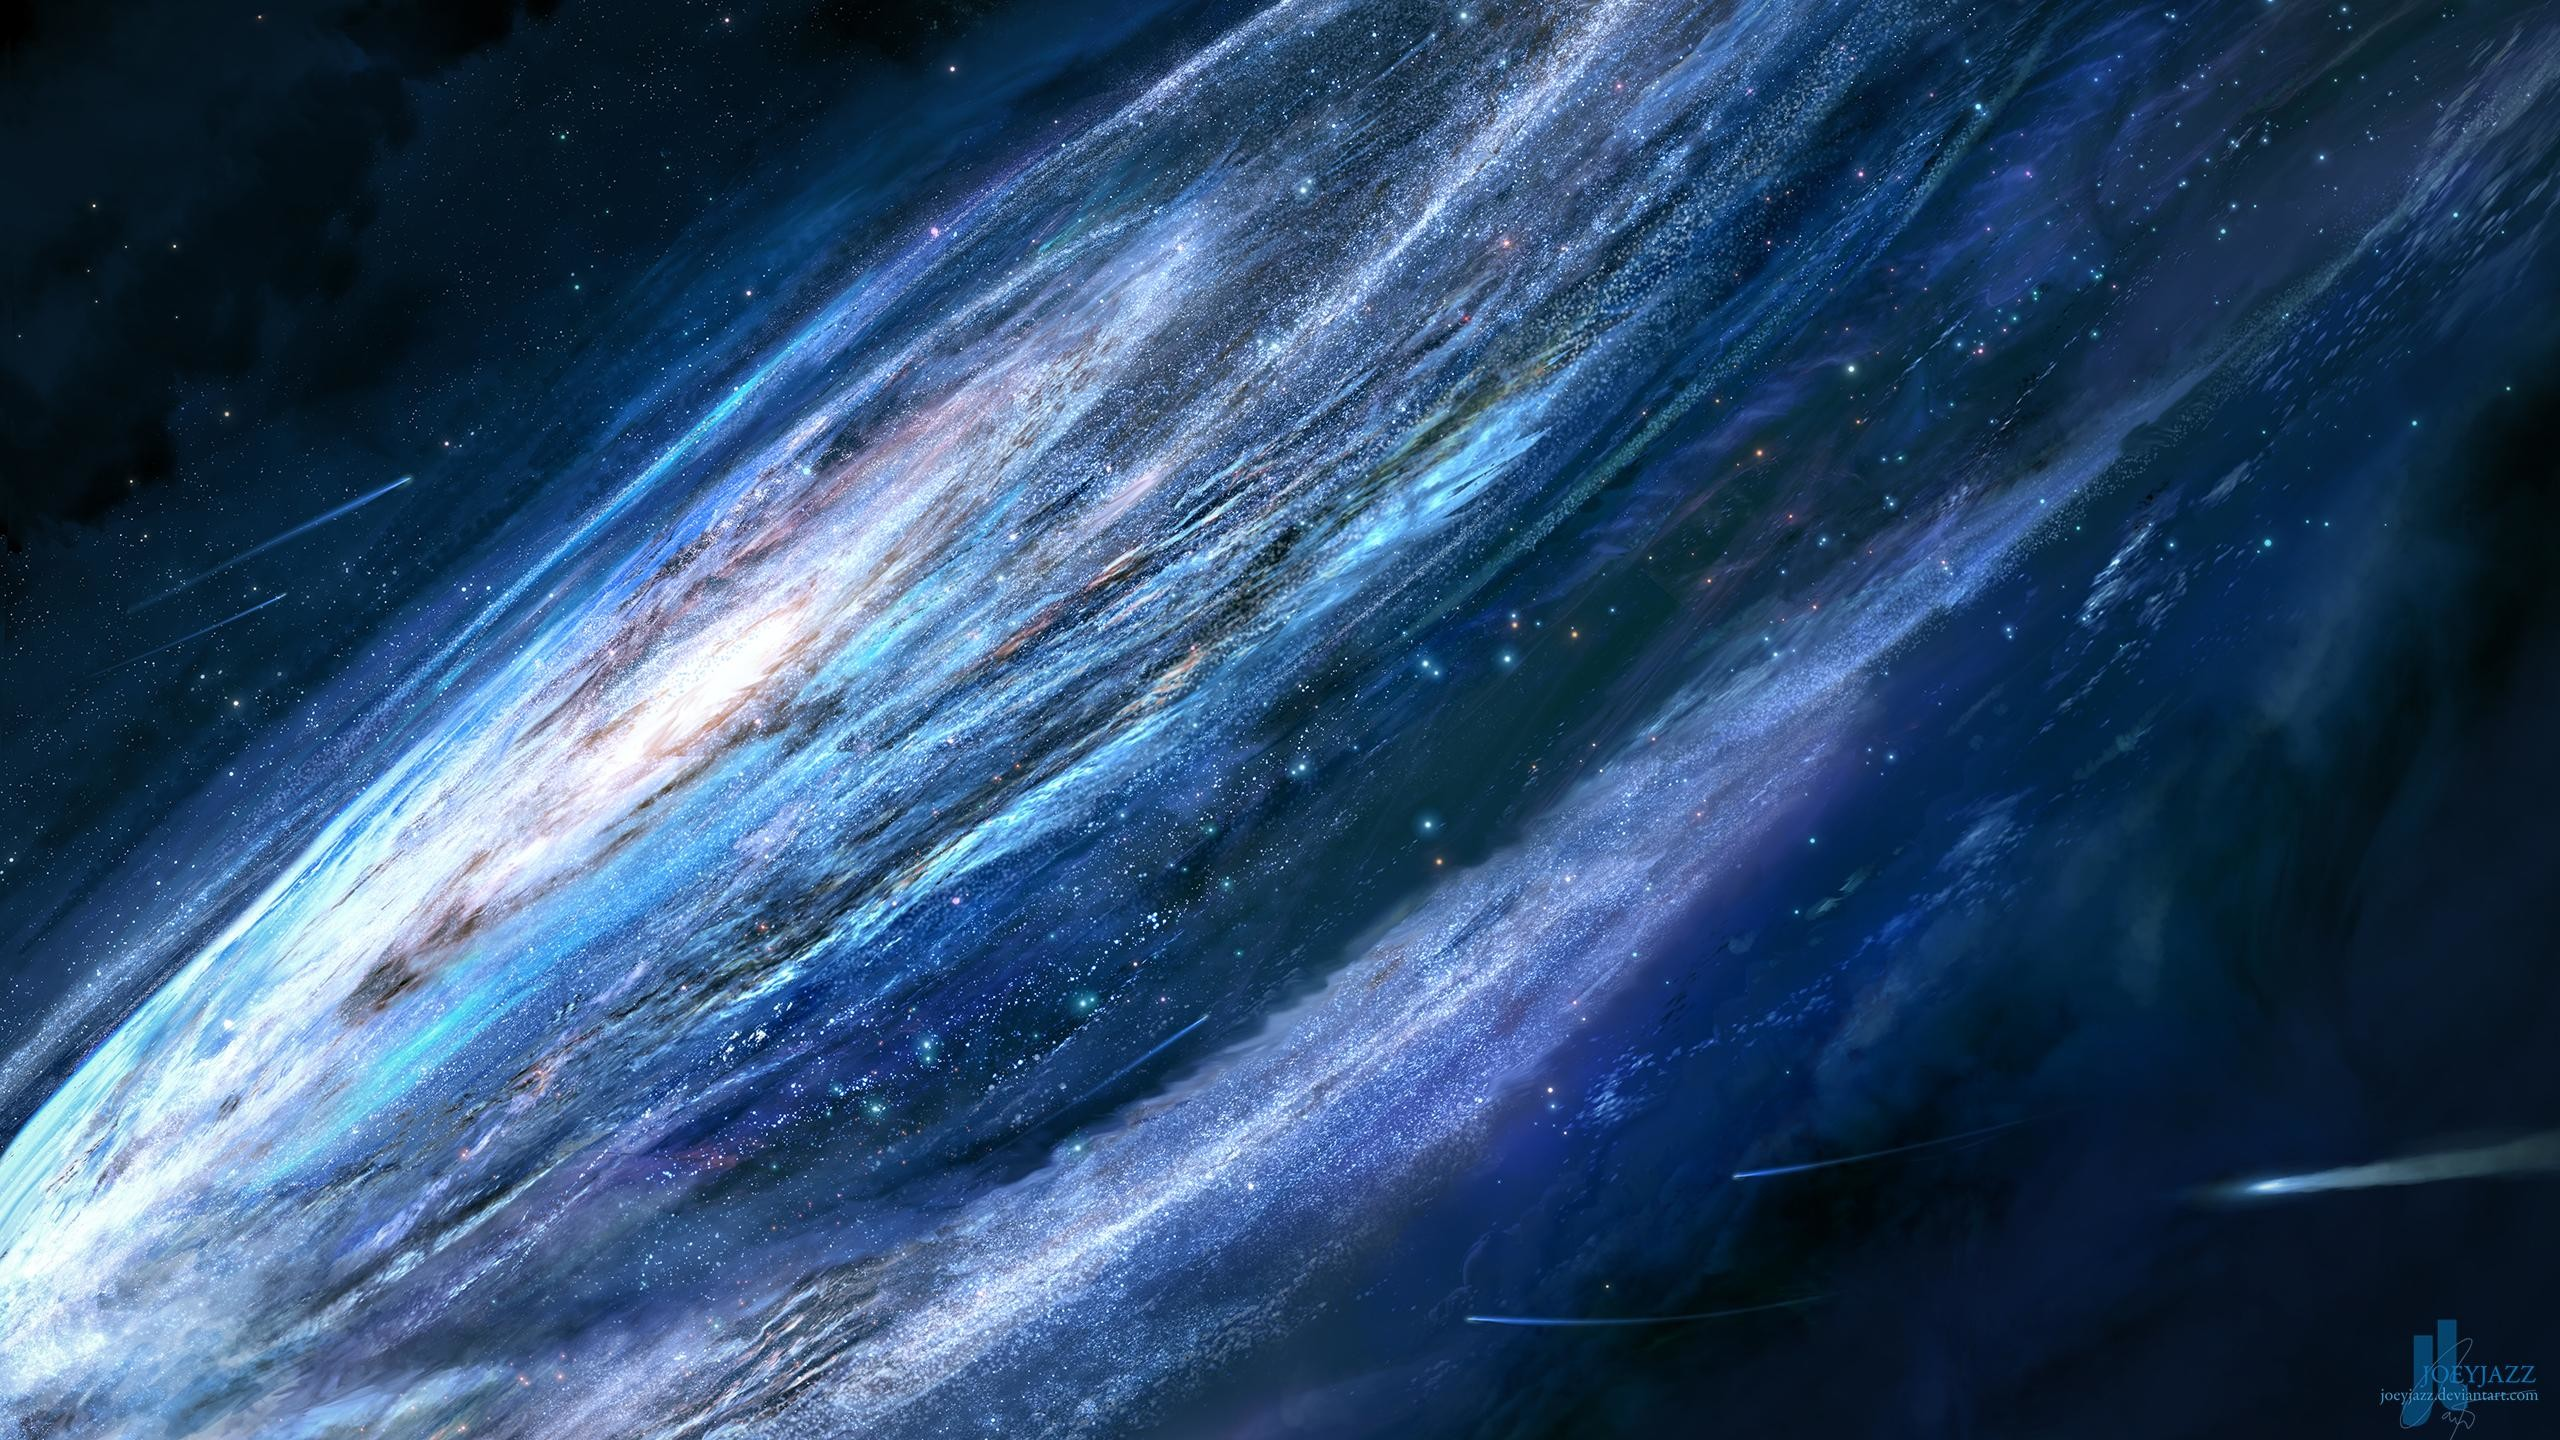 2560x1440 Download Original Wallpaper Category:space ...